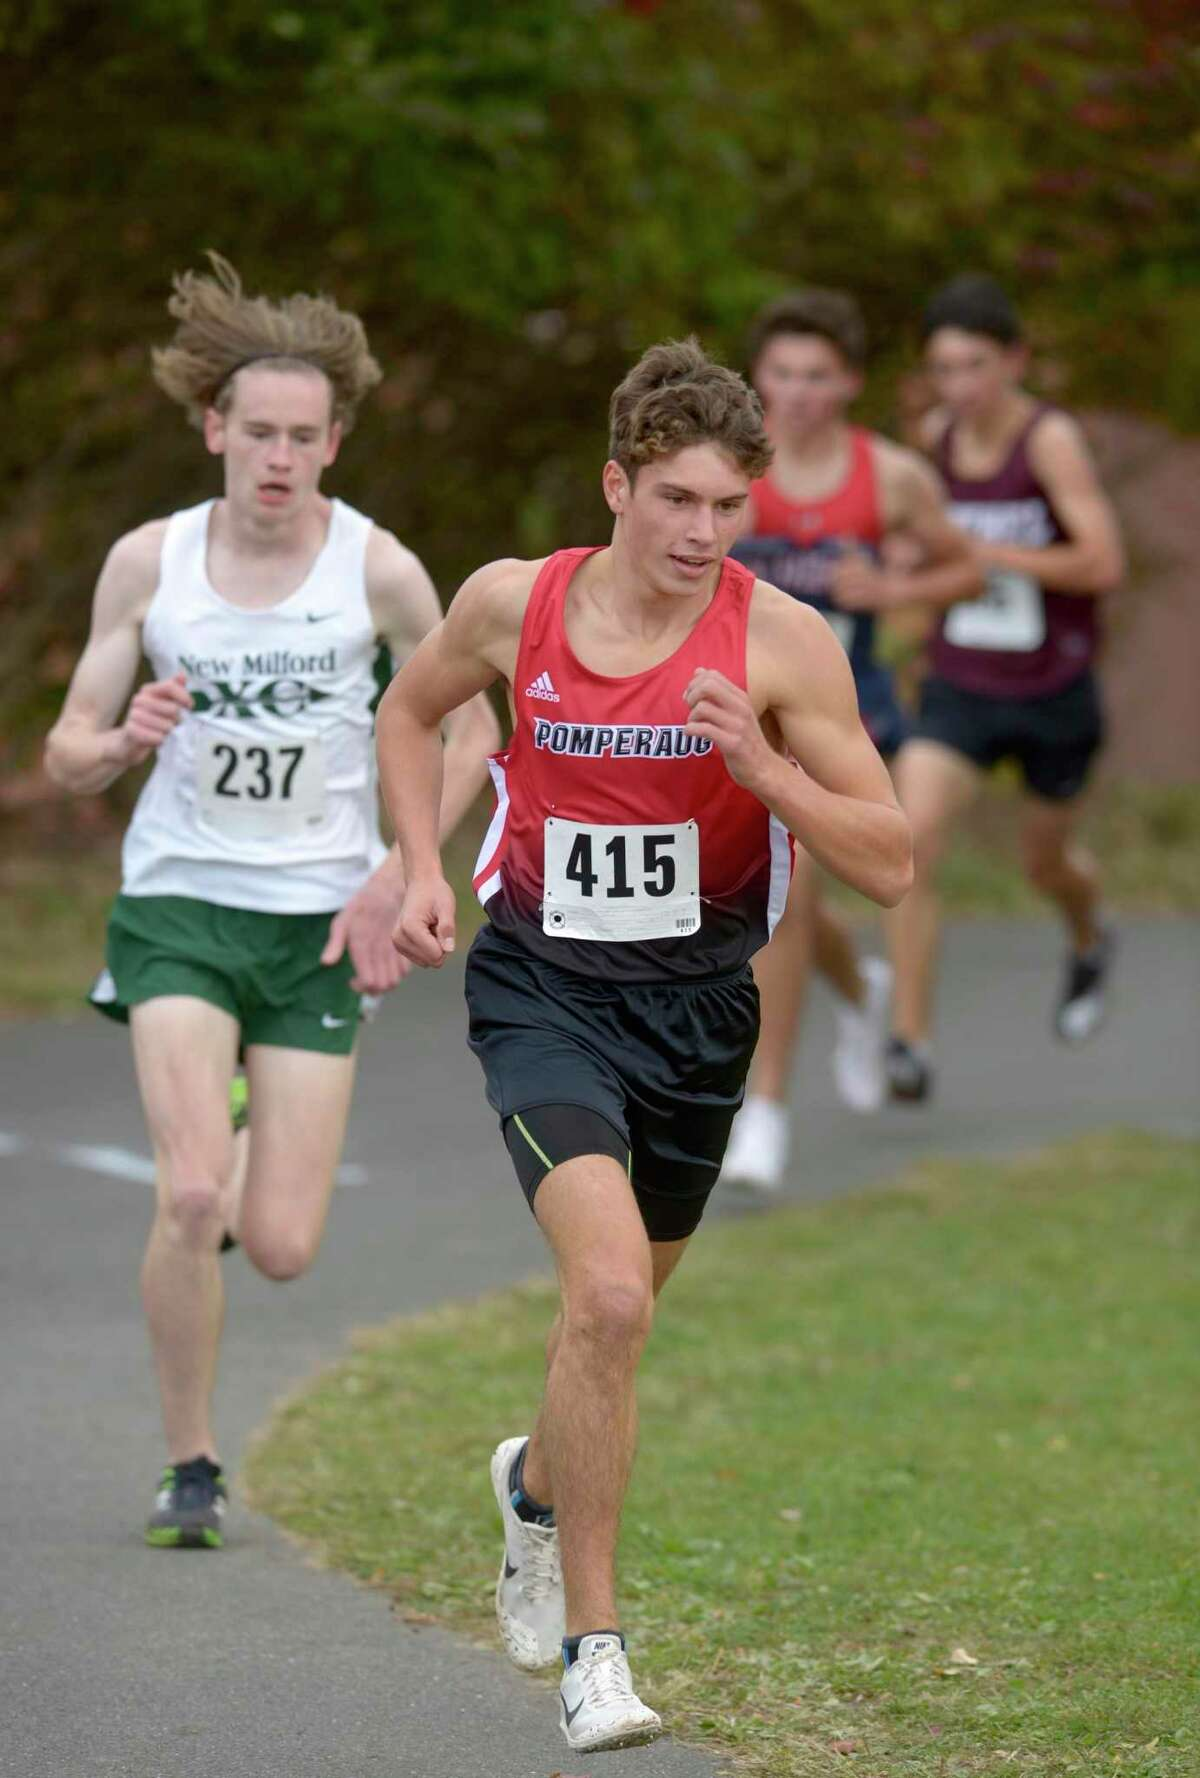 Pomperaug's Trey Generali (415) leads New Milford's Garred Farrell (237) in the boys SWC cross country championship race, Friday afternoon, October 18, 2019, at Bethel High School, Bethel, Conn. Generali finish first with a time of 16:39.15.